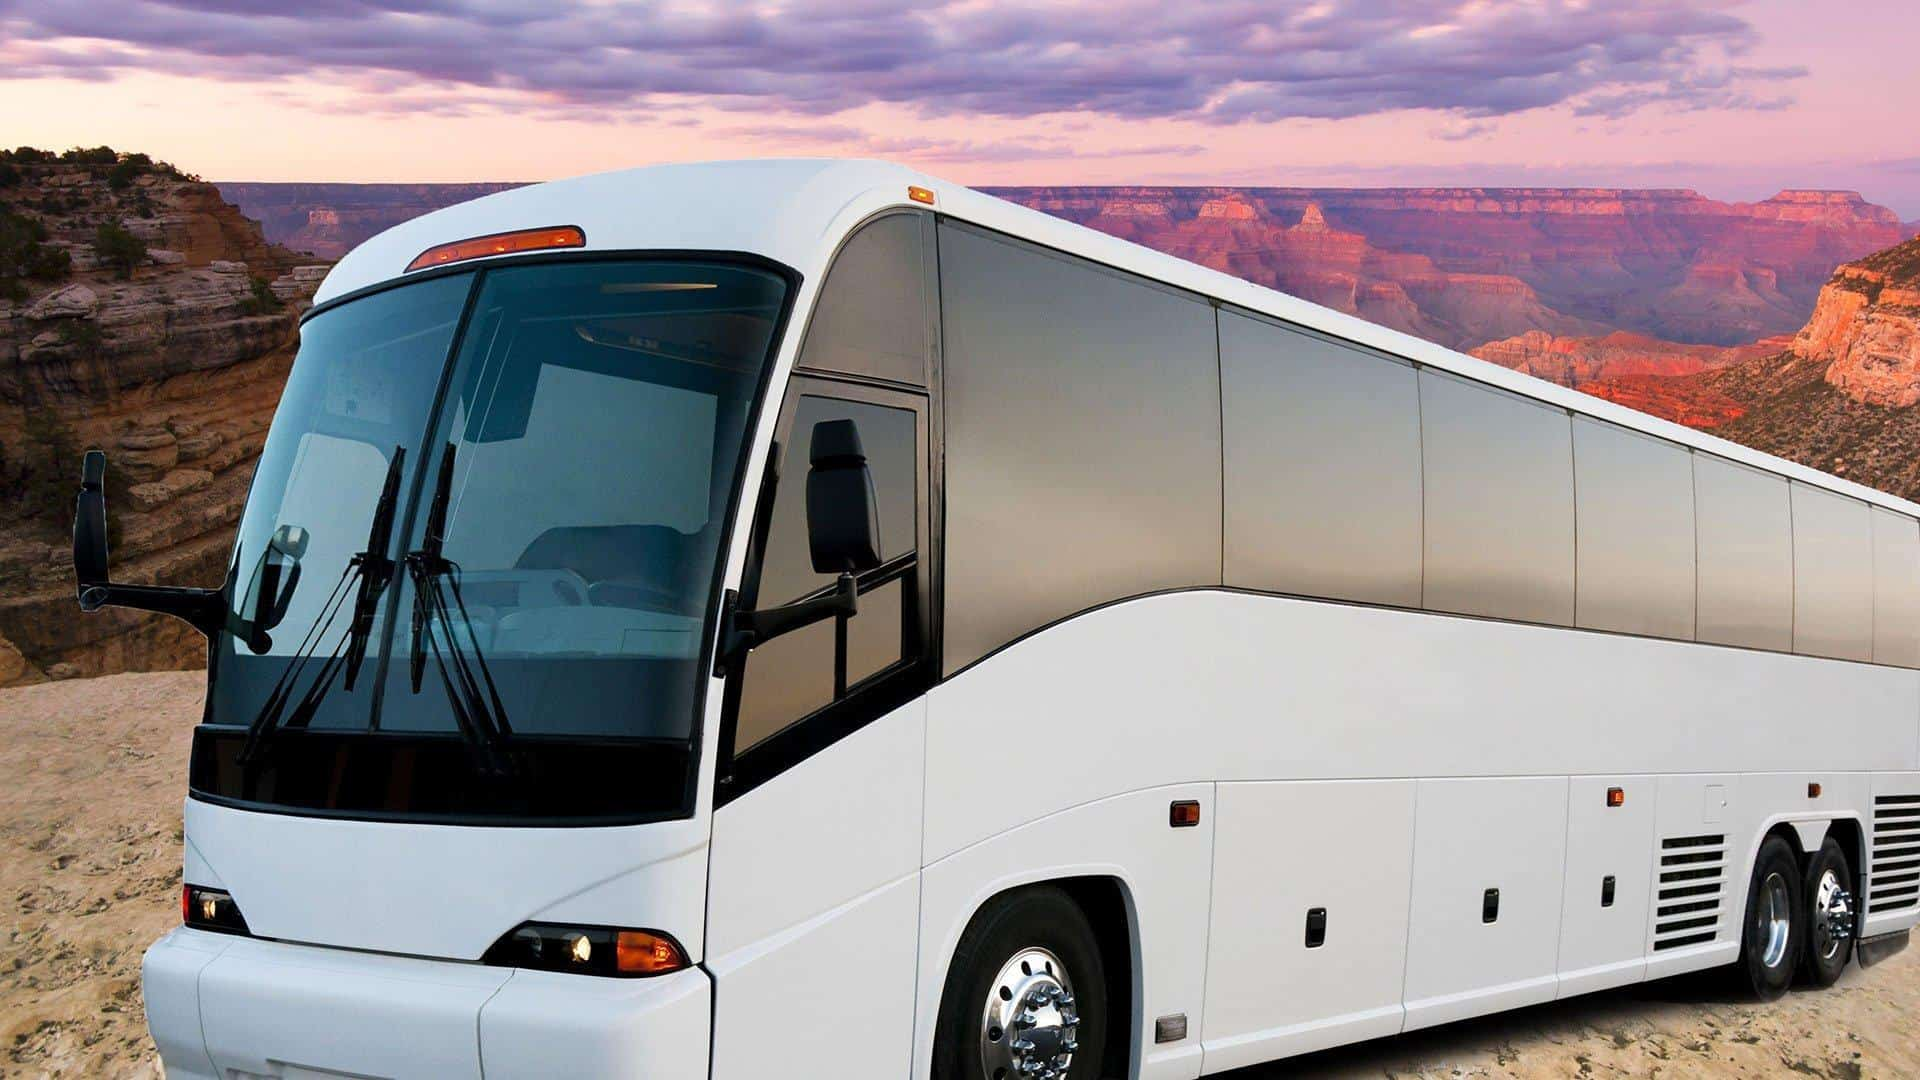 Grand Canyon South Rim Bus Tour From Vegas – Best Prices